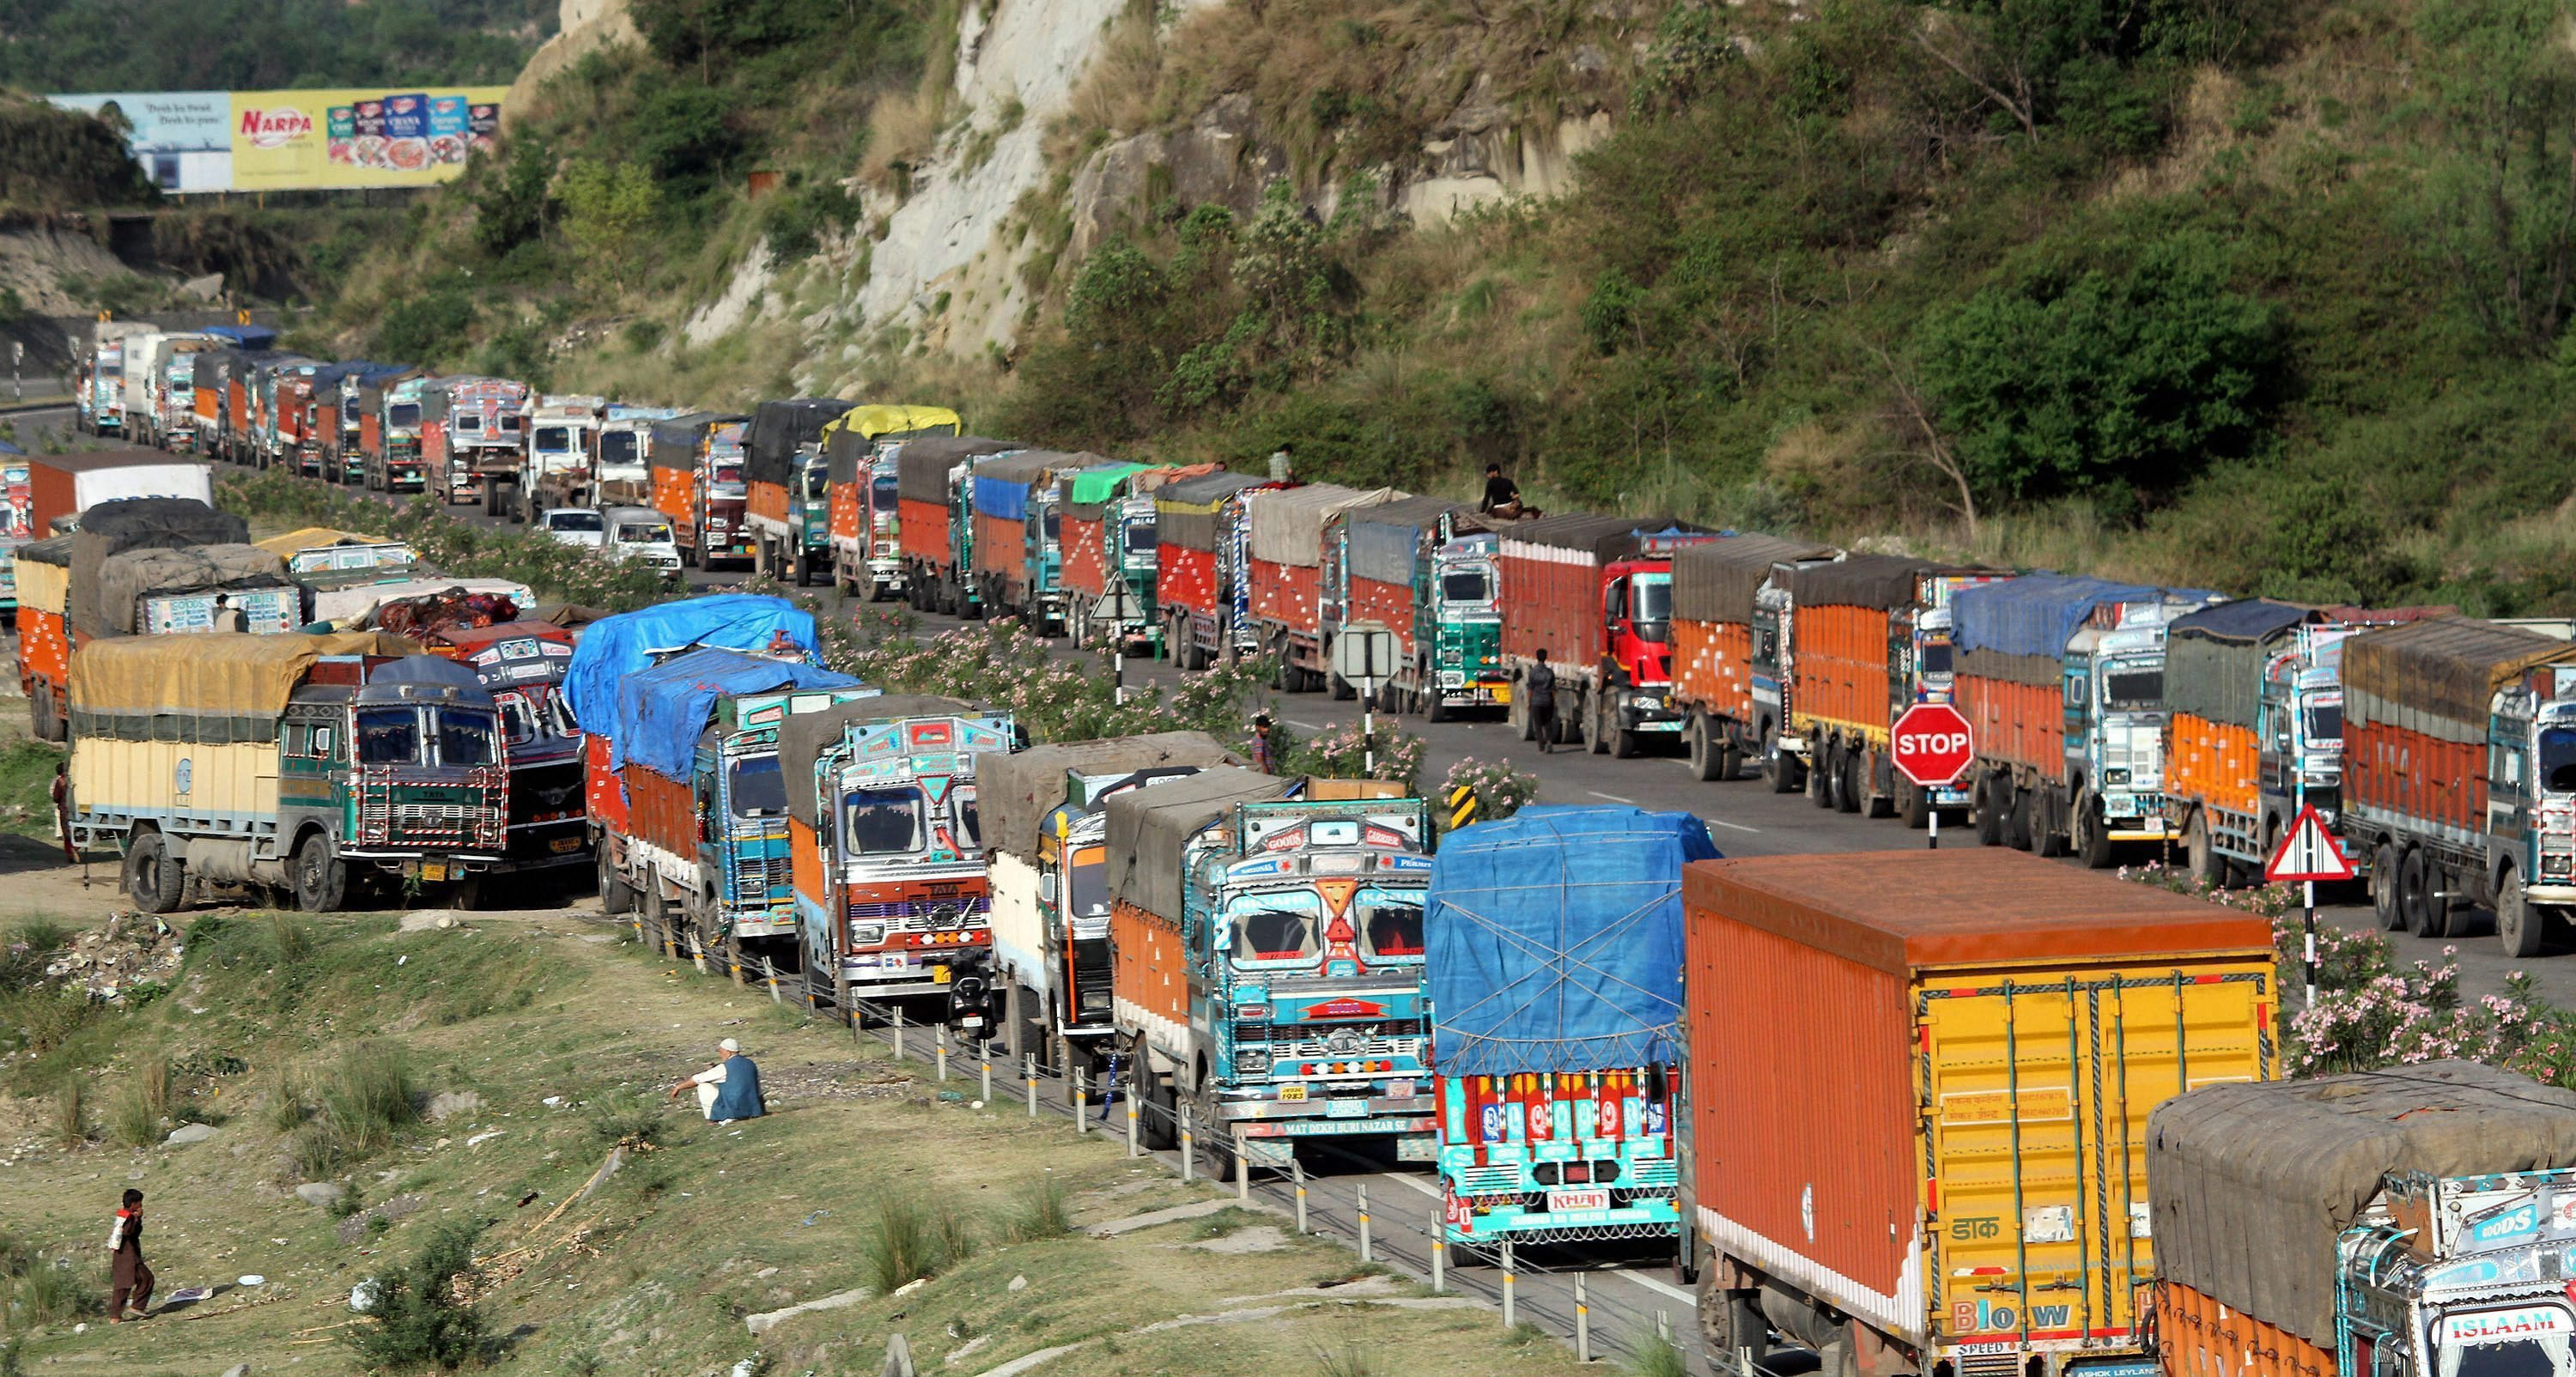 Trucks carry government records from Jammu to Srinagar during the half-yearly Durbar Move. Image credit: PTI